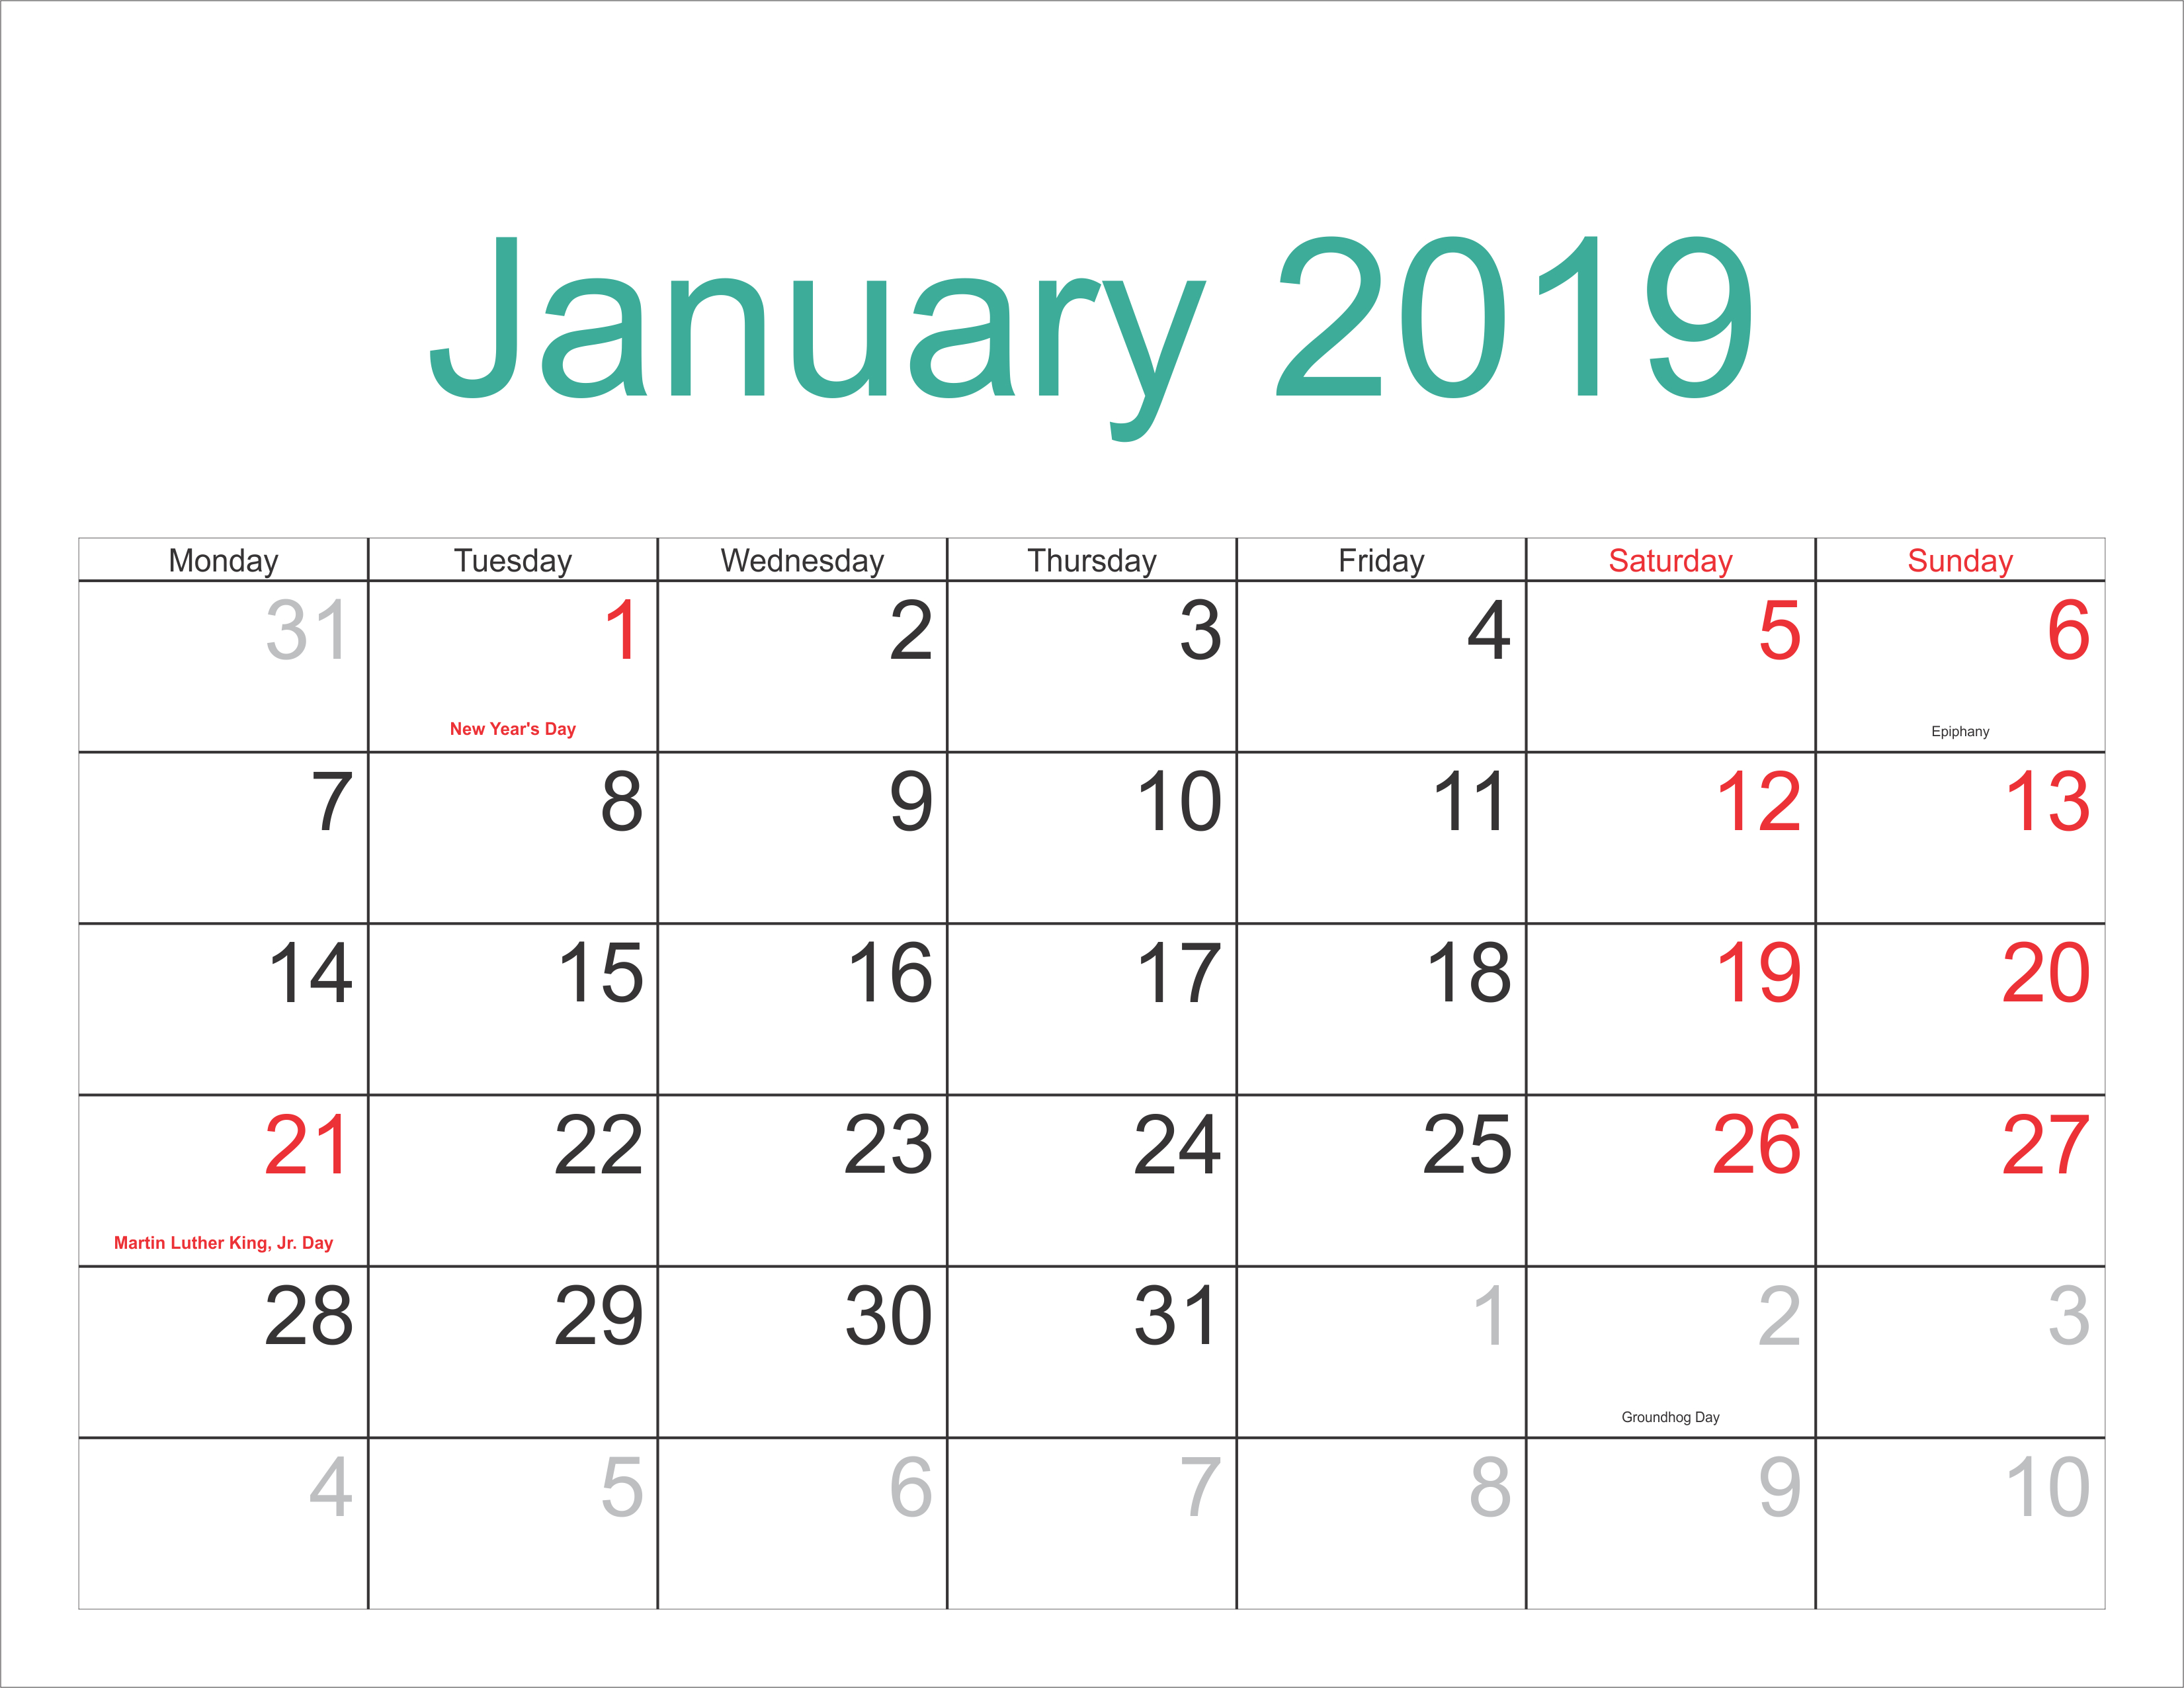 January 2019 Calendar Template With Holidays - Free Printable within Calendar With Holidays Printable Templates